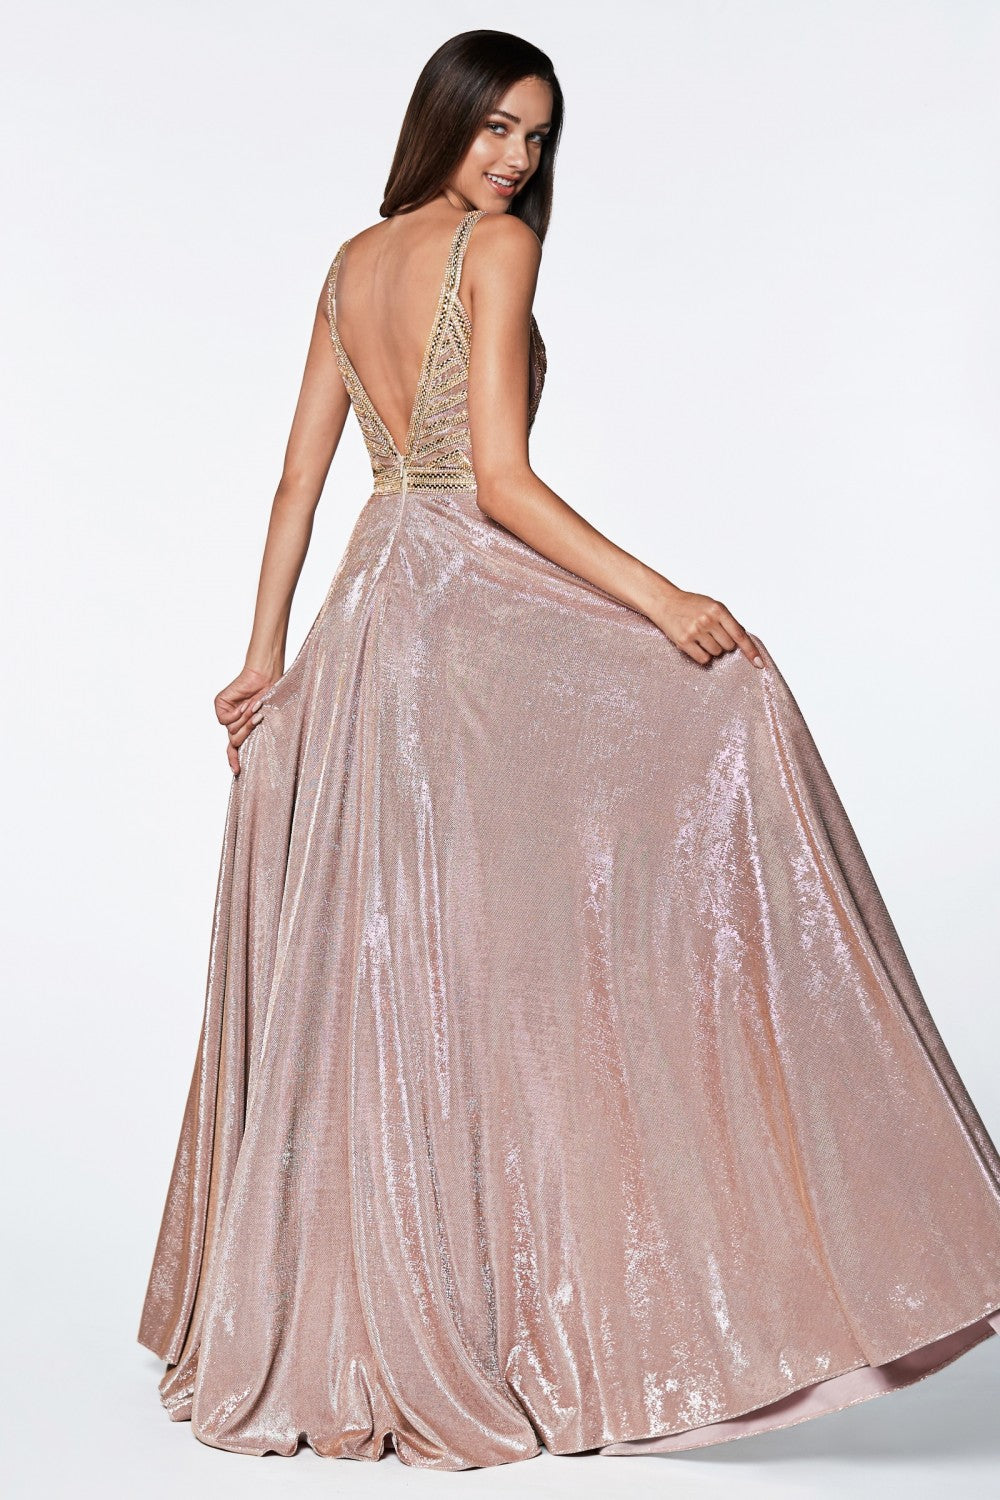 A-Line Glitter Gown With Beaded Top And Metallic Fabric